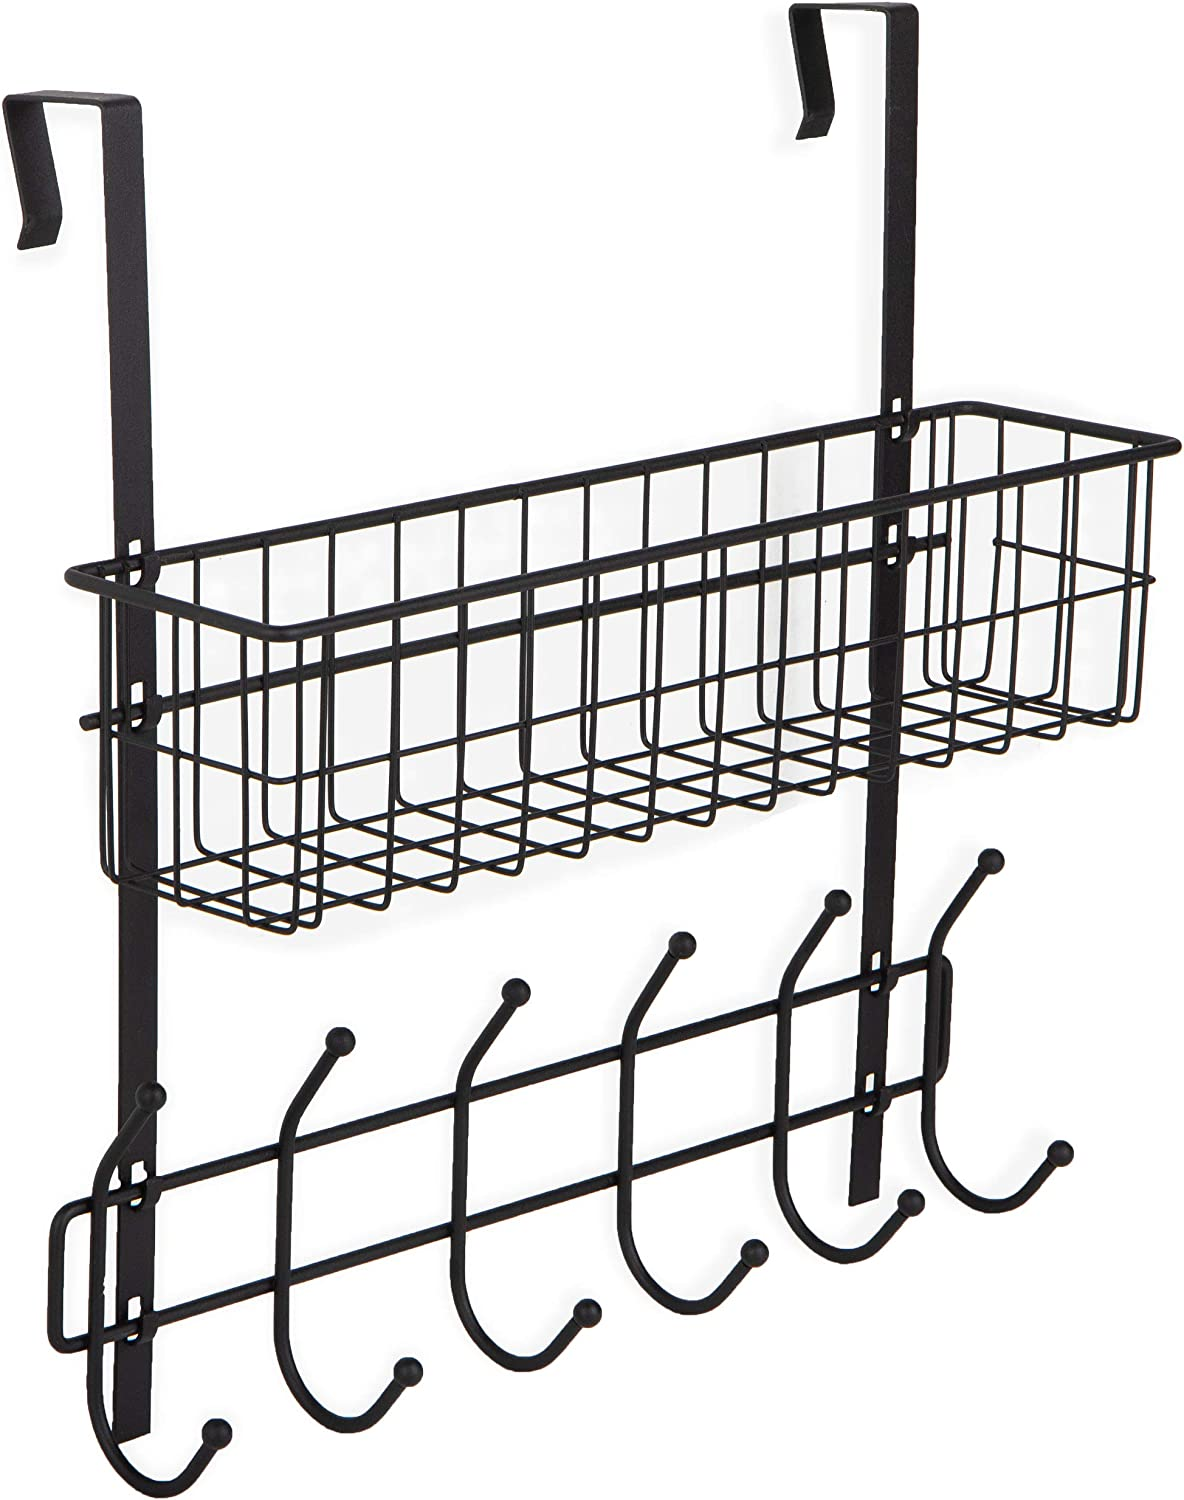 Wall35 Porta Over The Door Hook for Organization and Storage, Black Wire Basket with 6 Hooks